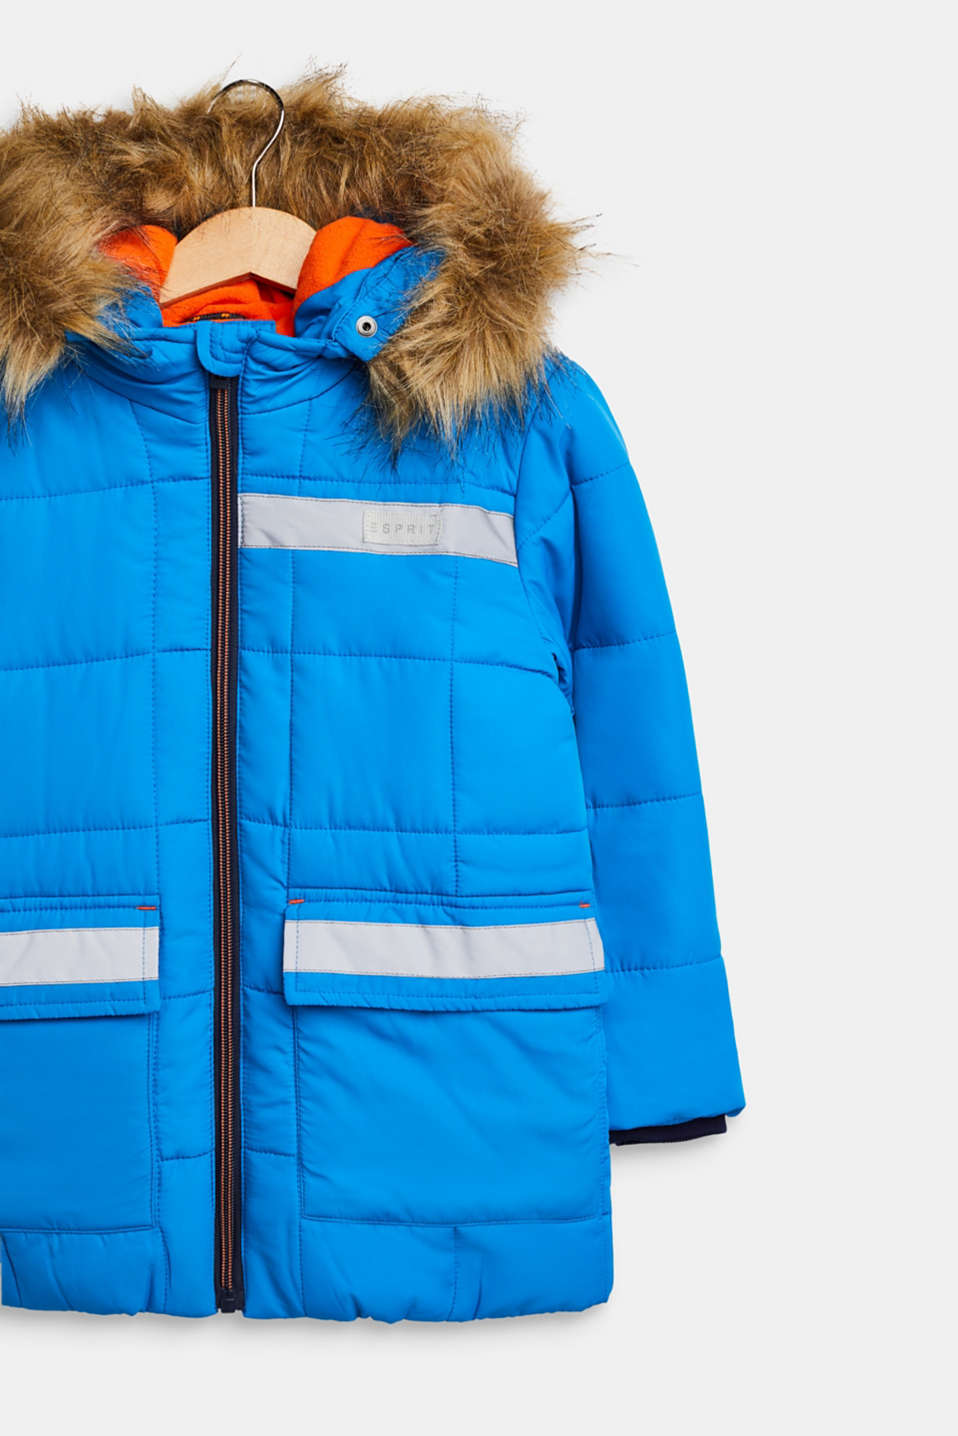 Quilted jacket with reflective details, SPARROW BLUE, detail image number 2